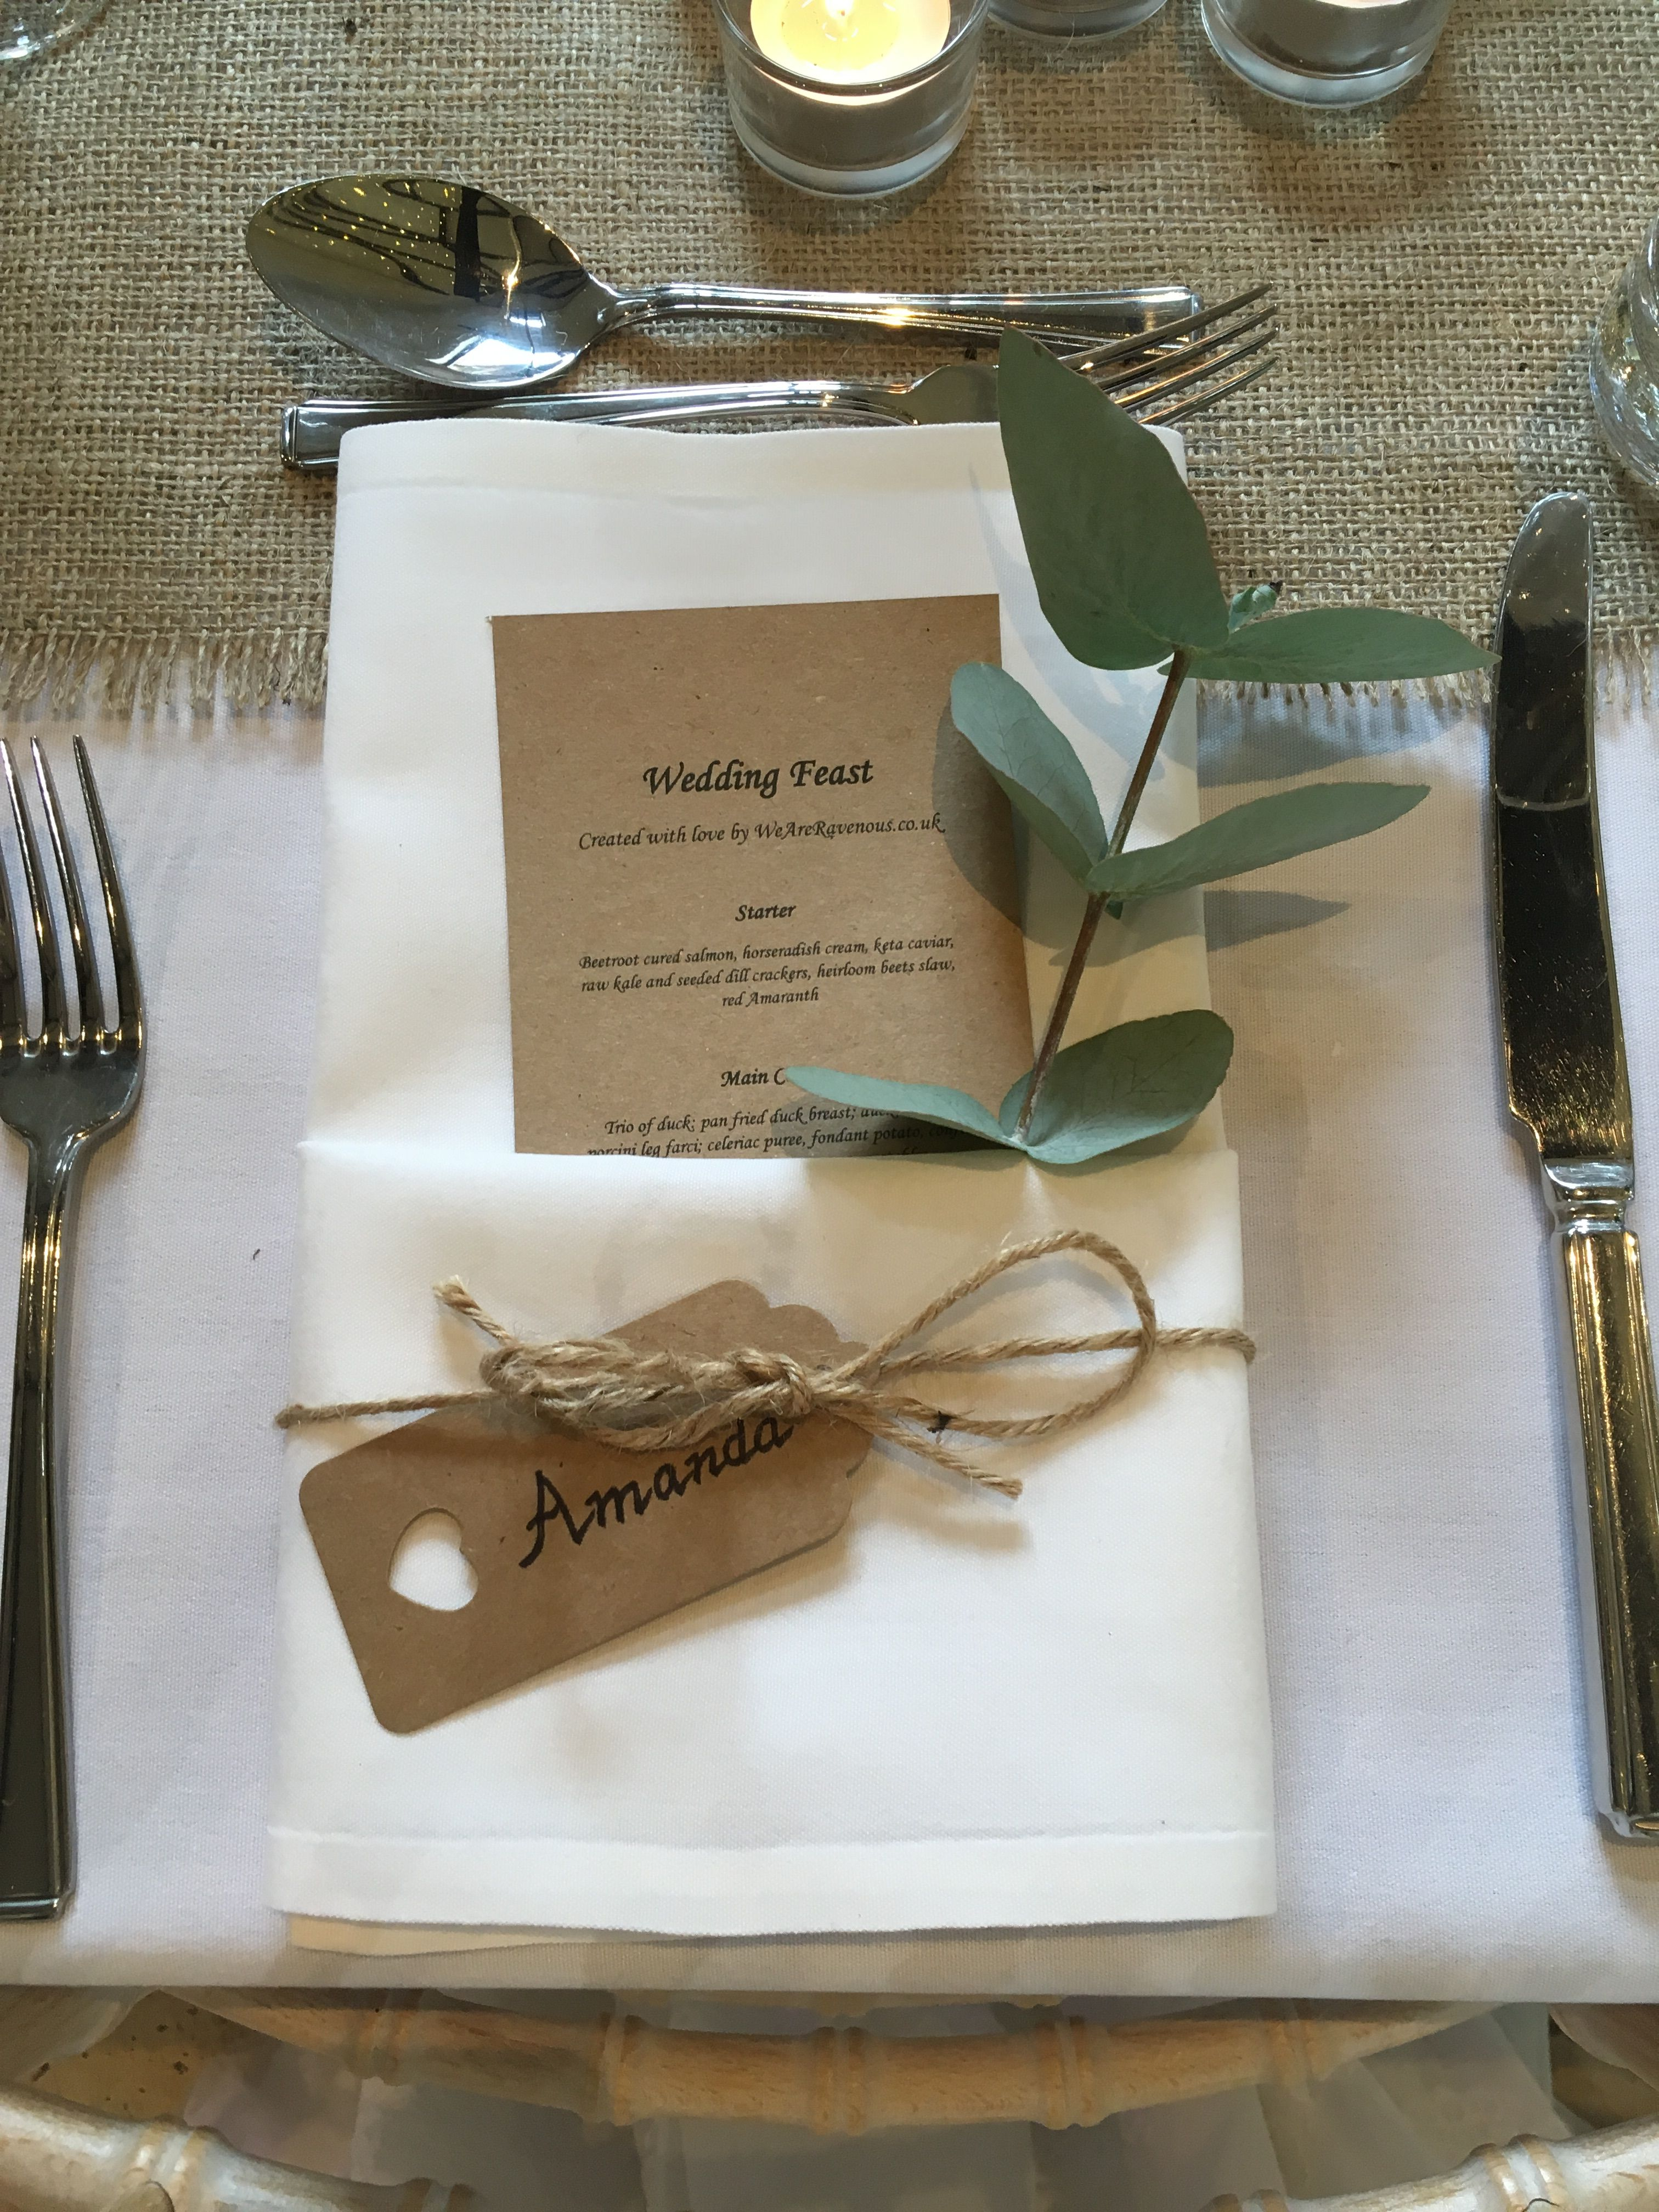 Bohemian / country style wedding place settings. Brown paper personalised menus and luggage tags are & Bohemian / country style wedding place settings. Brown paper ...